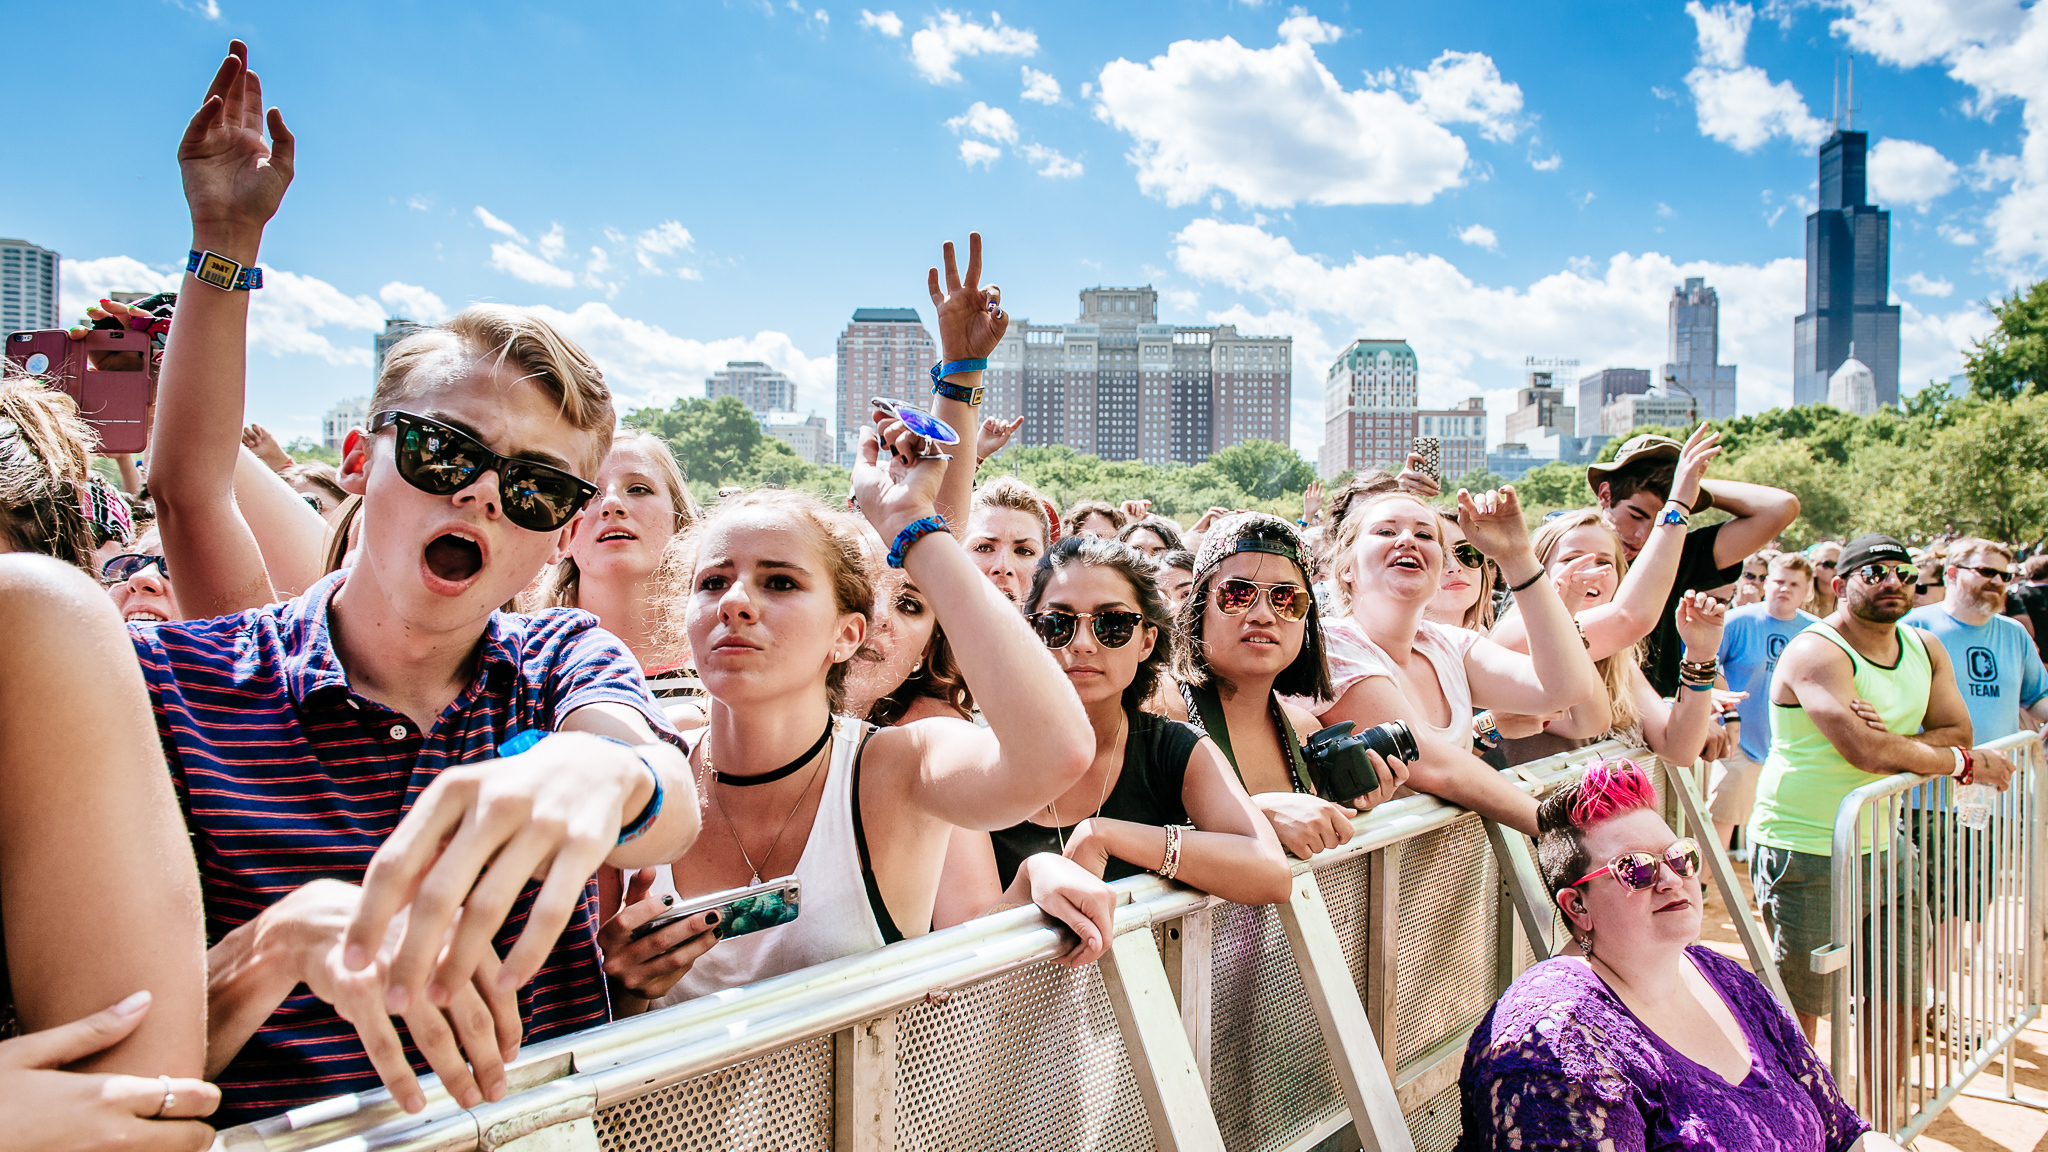 Our guide to Lollapalooza